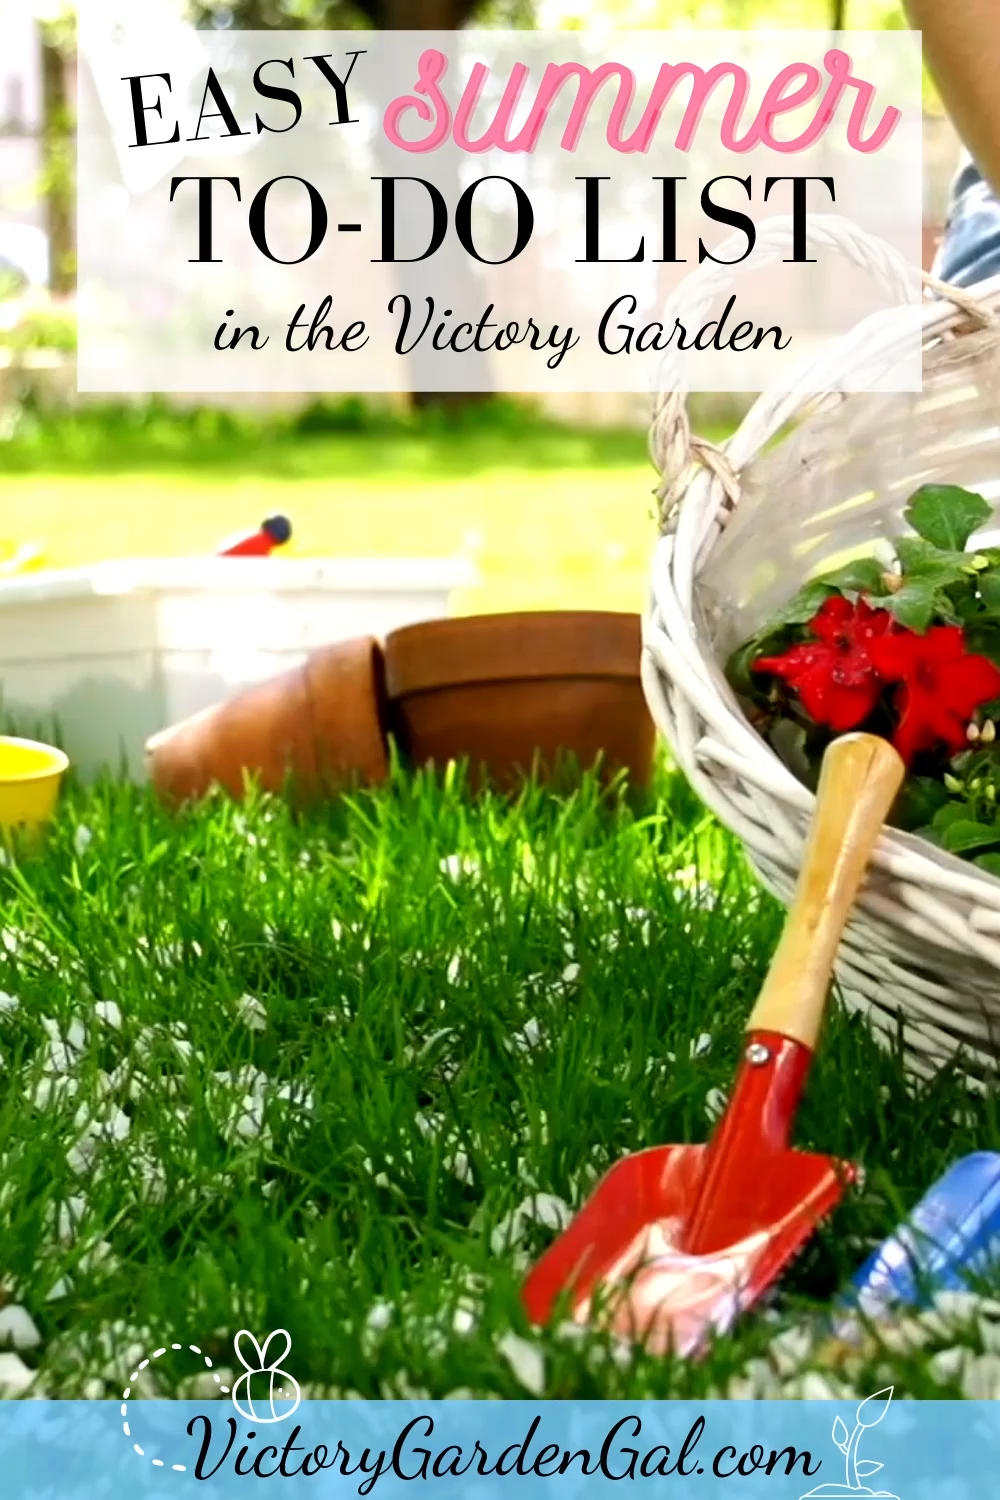 Make Your Spring Garden Stretch Into Fall! Super Easy Summer To-Do's in the Victory Garden. 6 things to do that will increase your yield and keep your garden productive into fall. Of course, number 6 is my favorite!